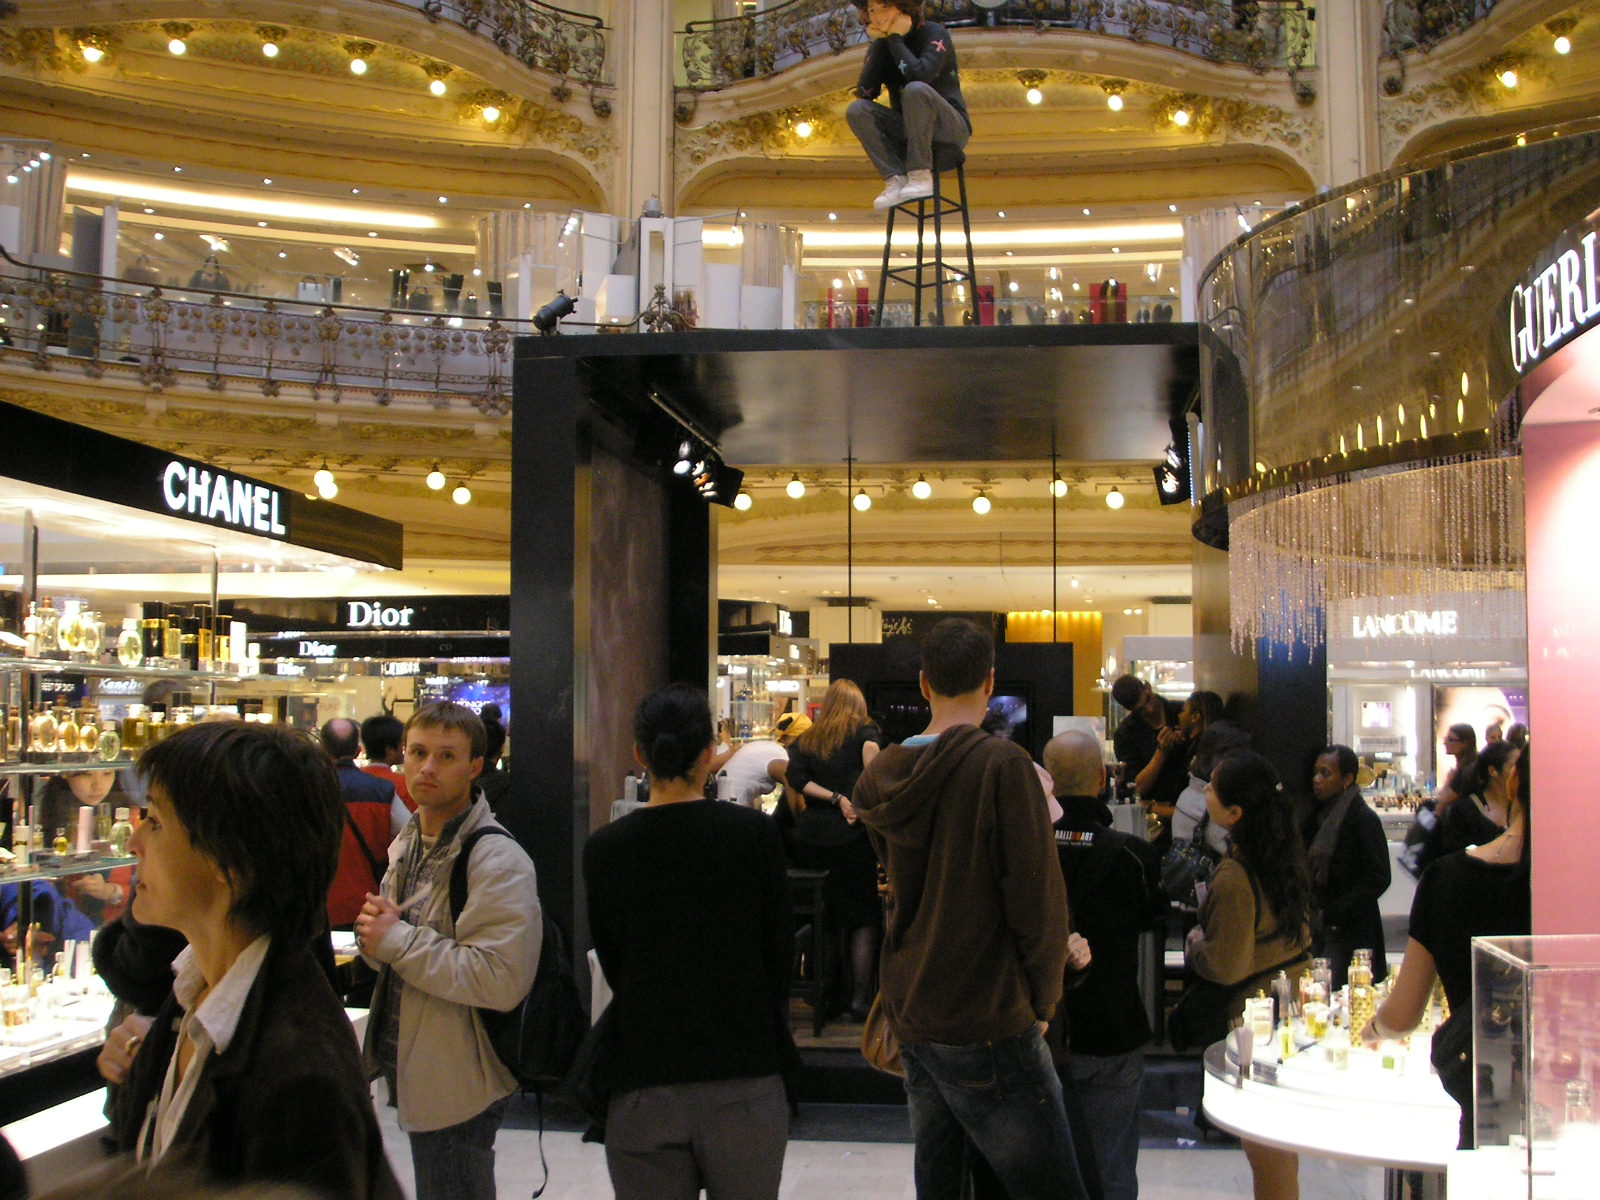 https://upload.wikimedia.org/wikipedia/commons/a/ab/Galeries_Lafayette_Paris_interieur_Oct_2007_005.jpg